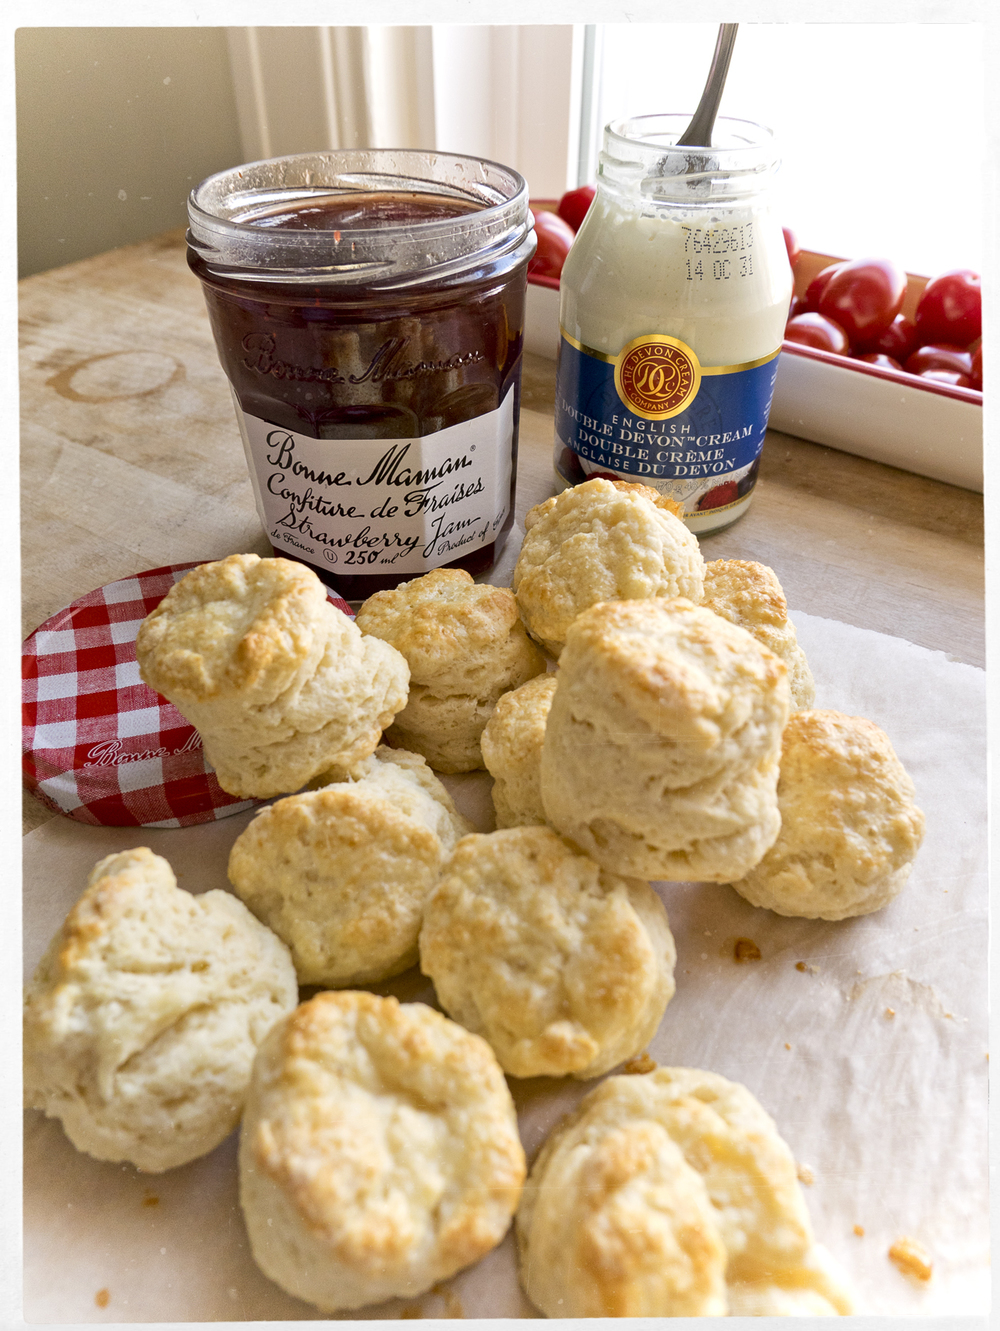 Saturday morning scones